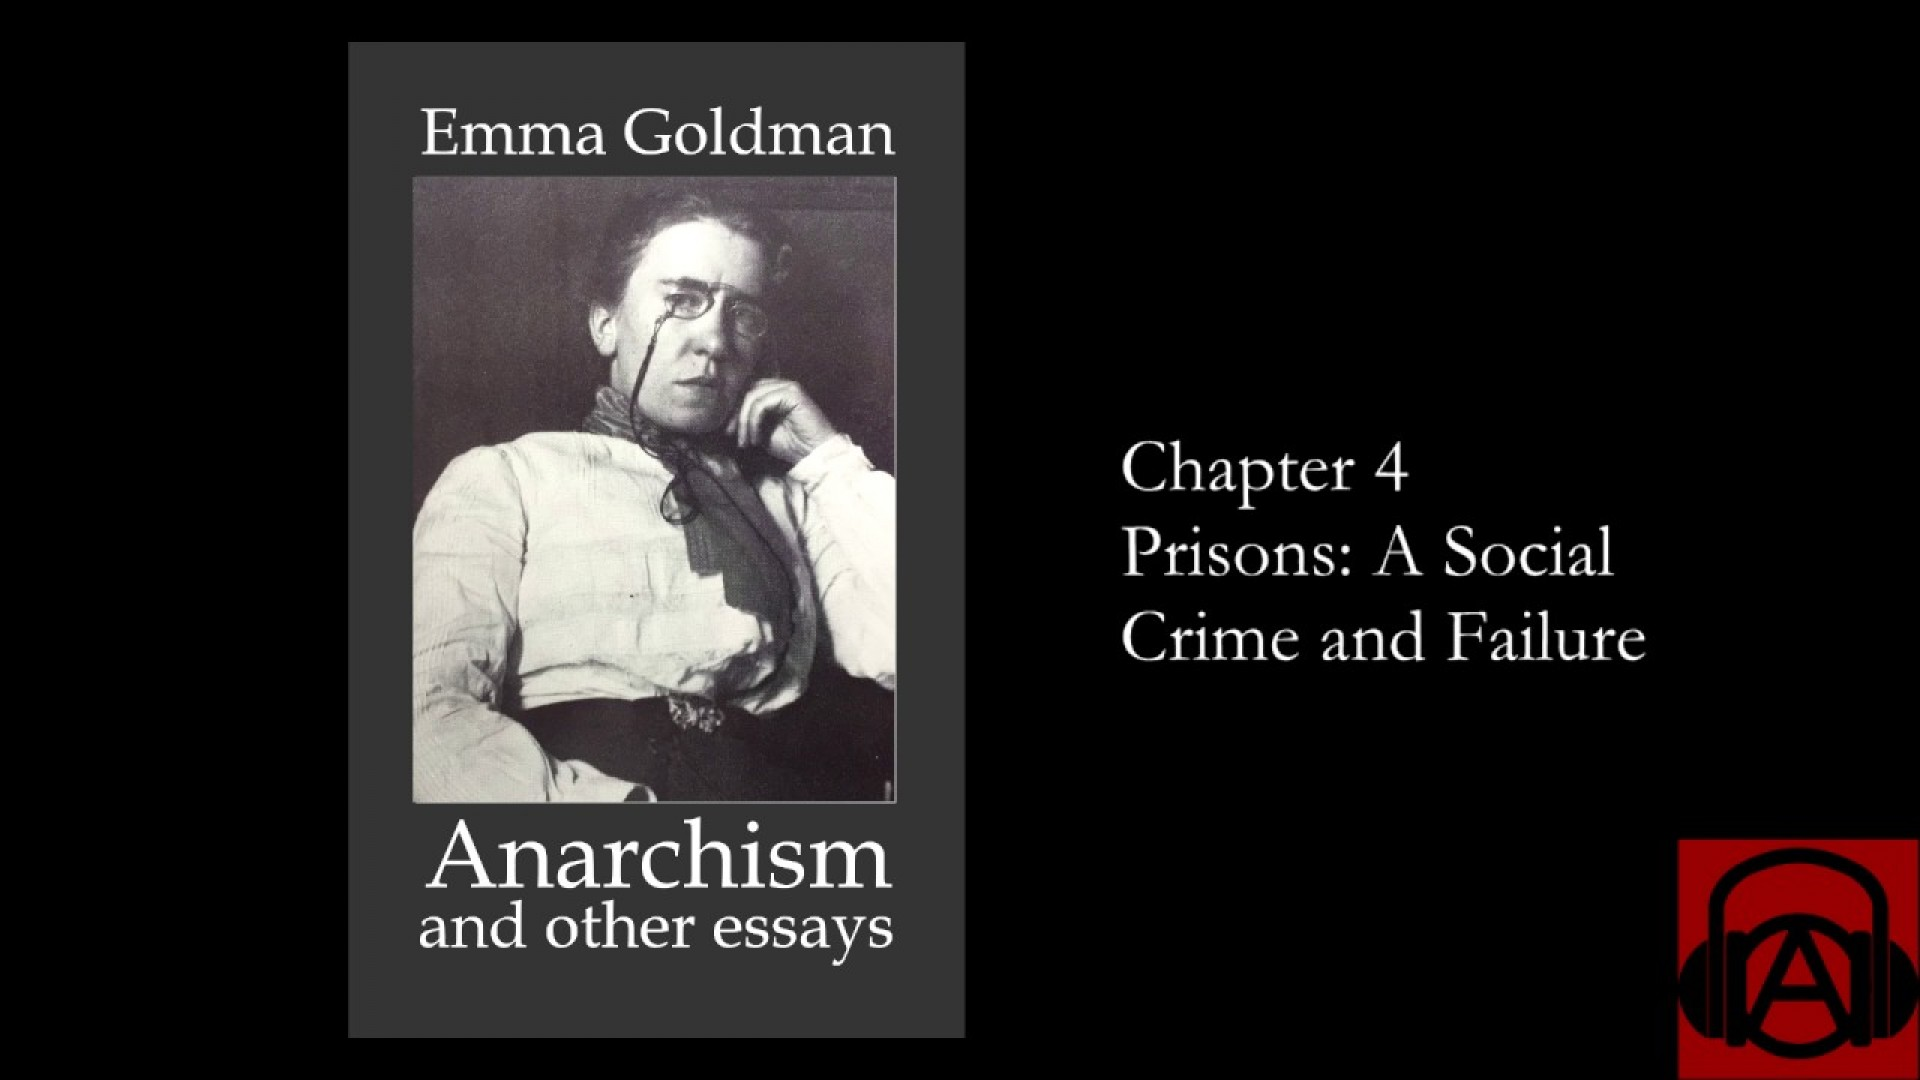 004 Anarchism And Other Essays Essay Example Incredible Emma Goldman Summary Pdf 1920